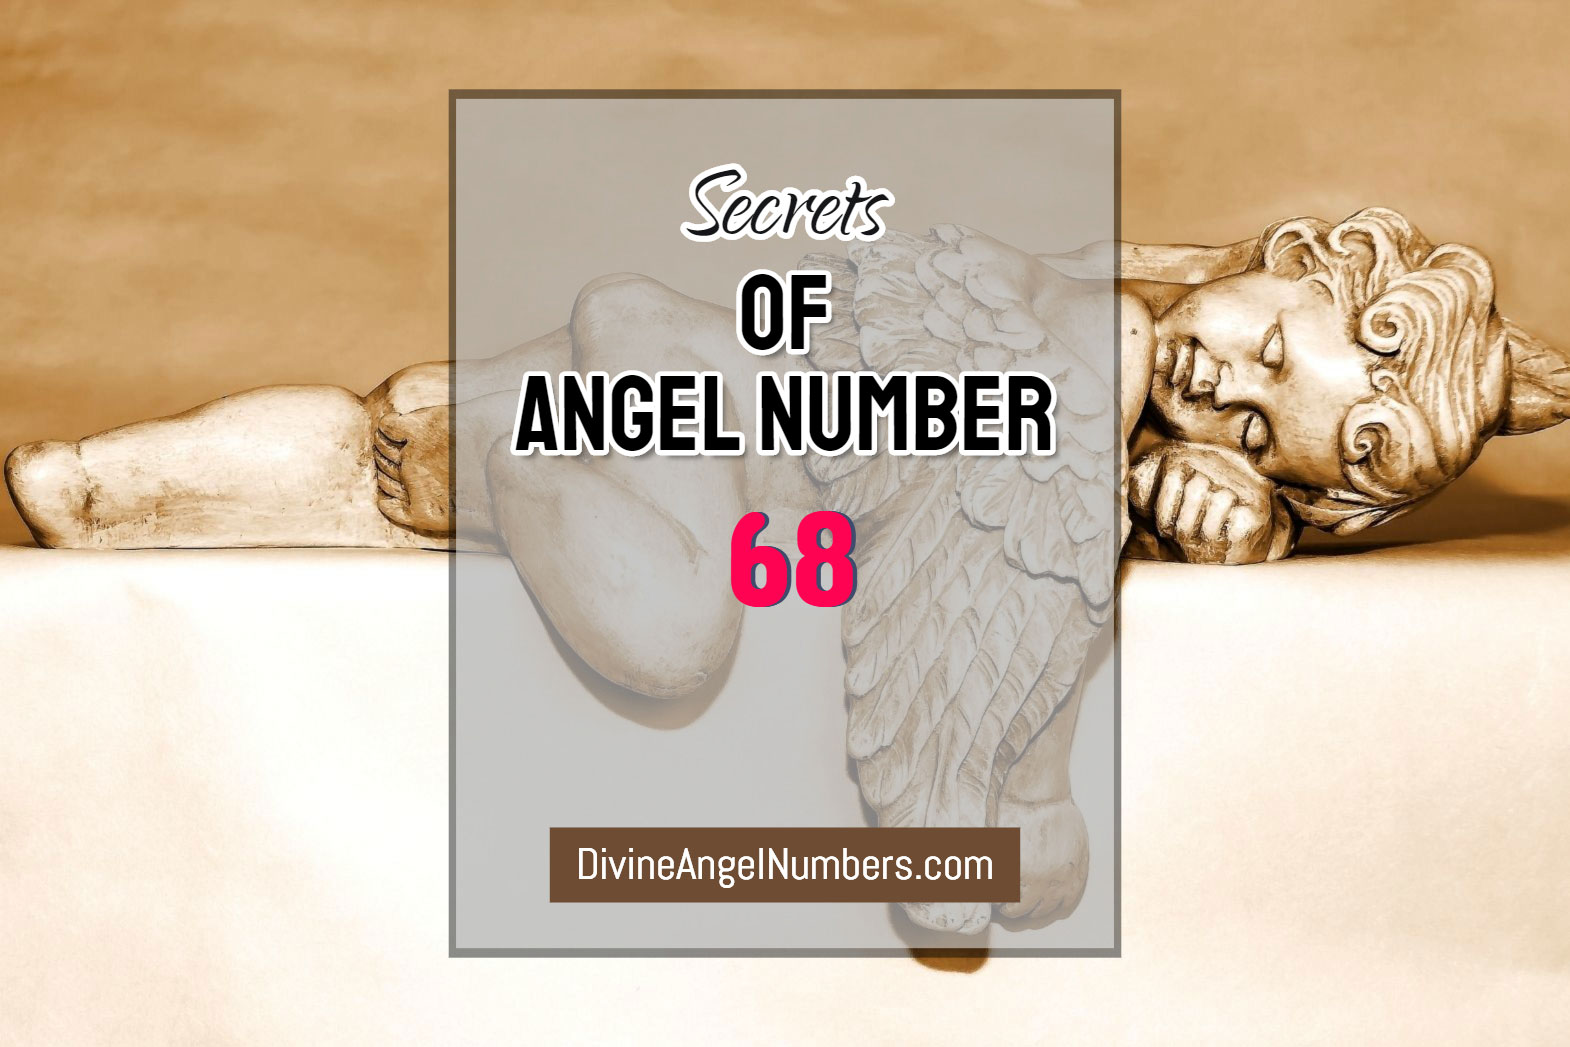 7 Reasons Why You Are Seeing Angel Number 68 - Meaning Of 68